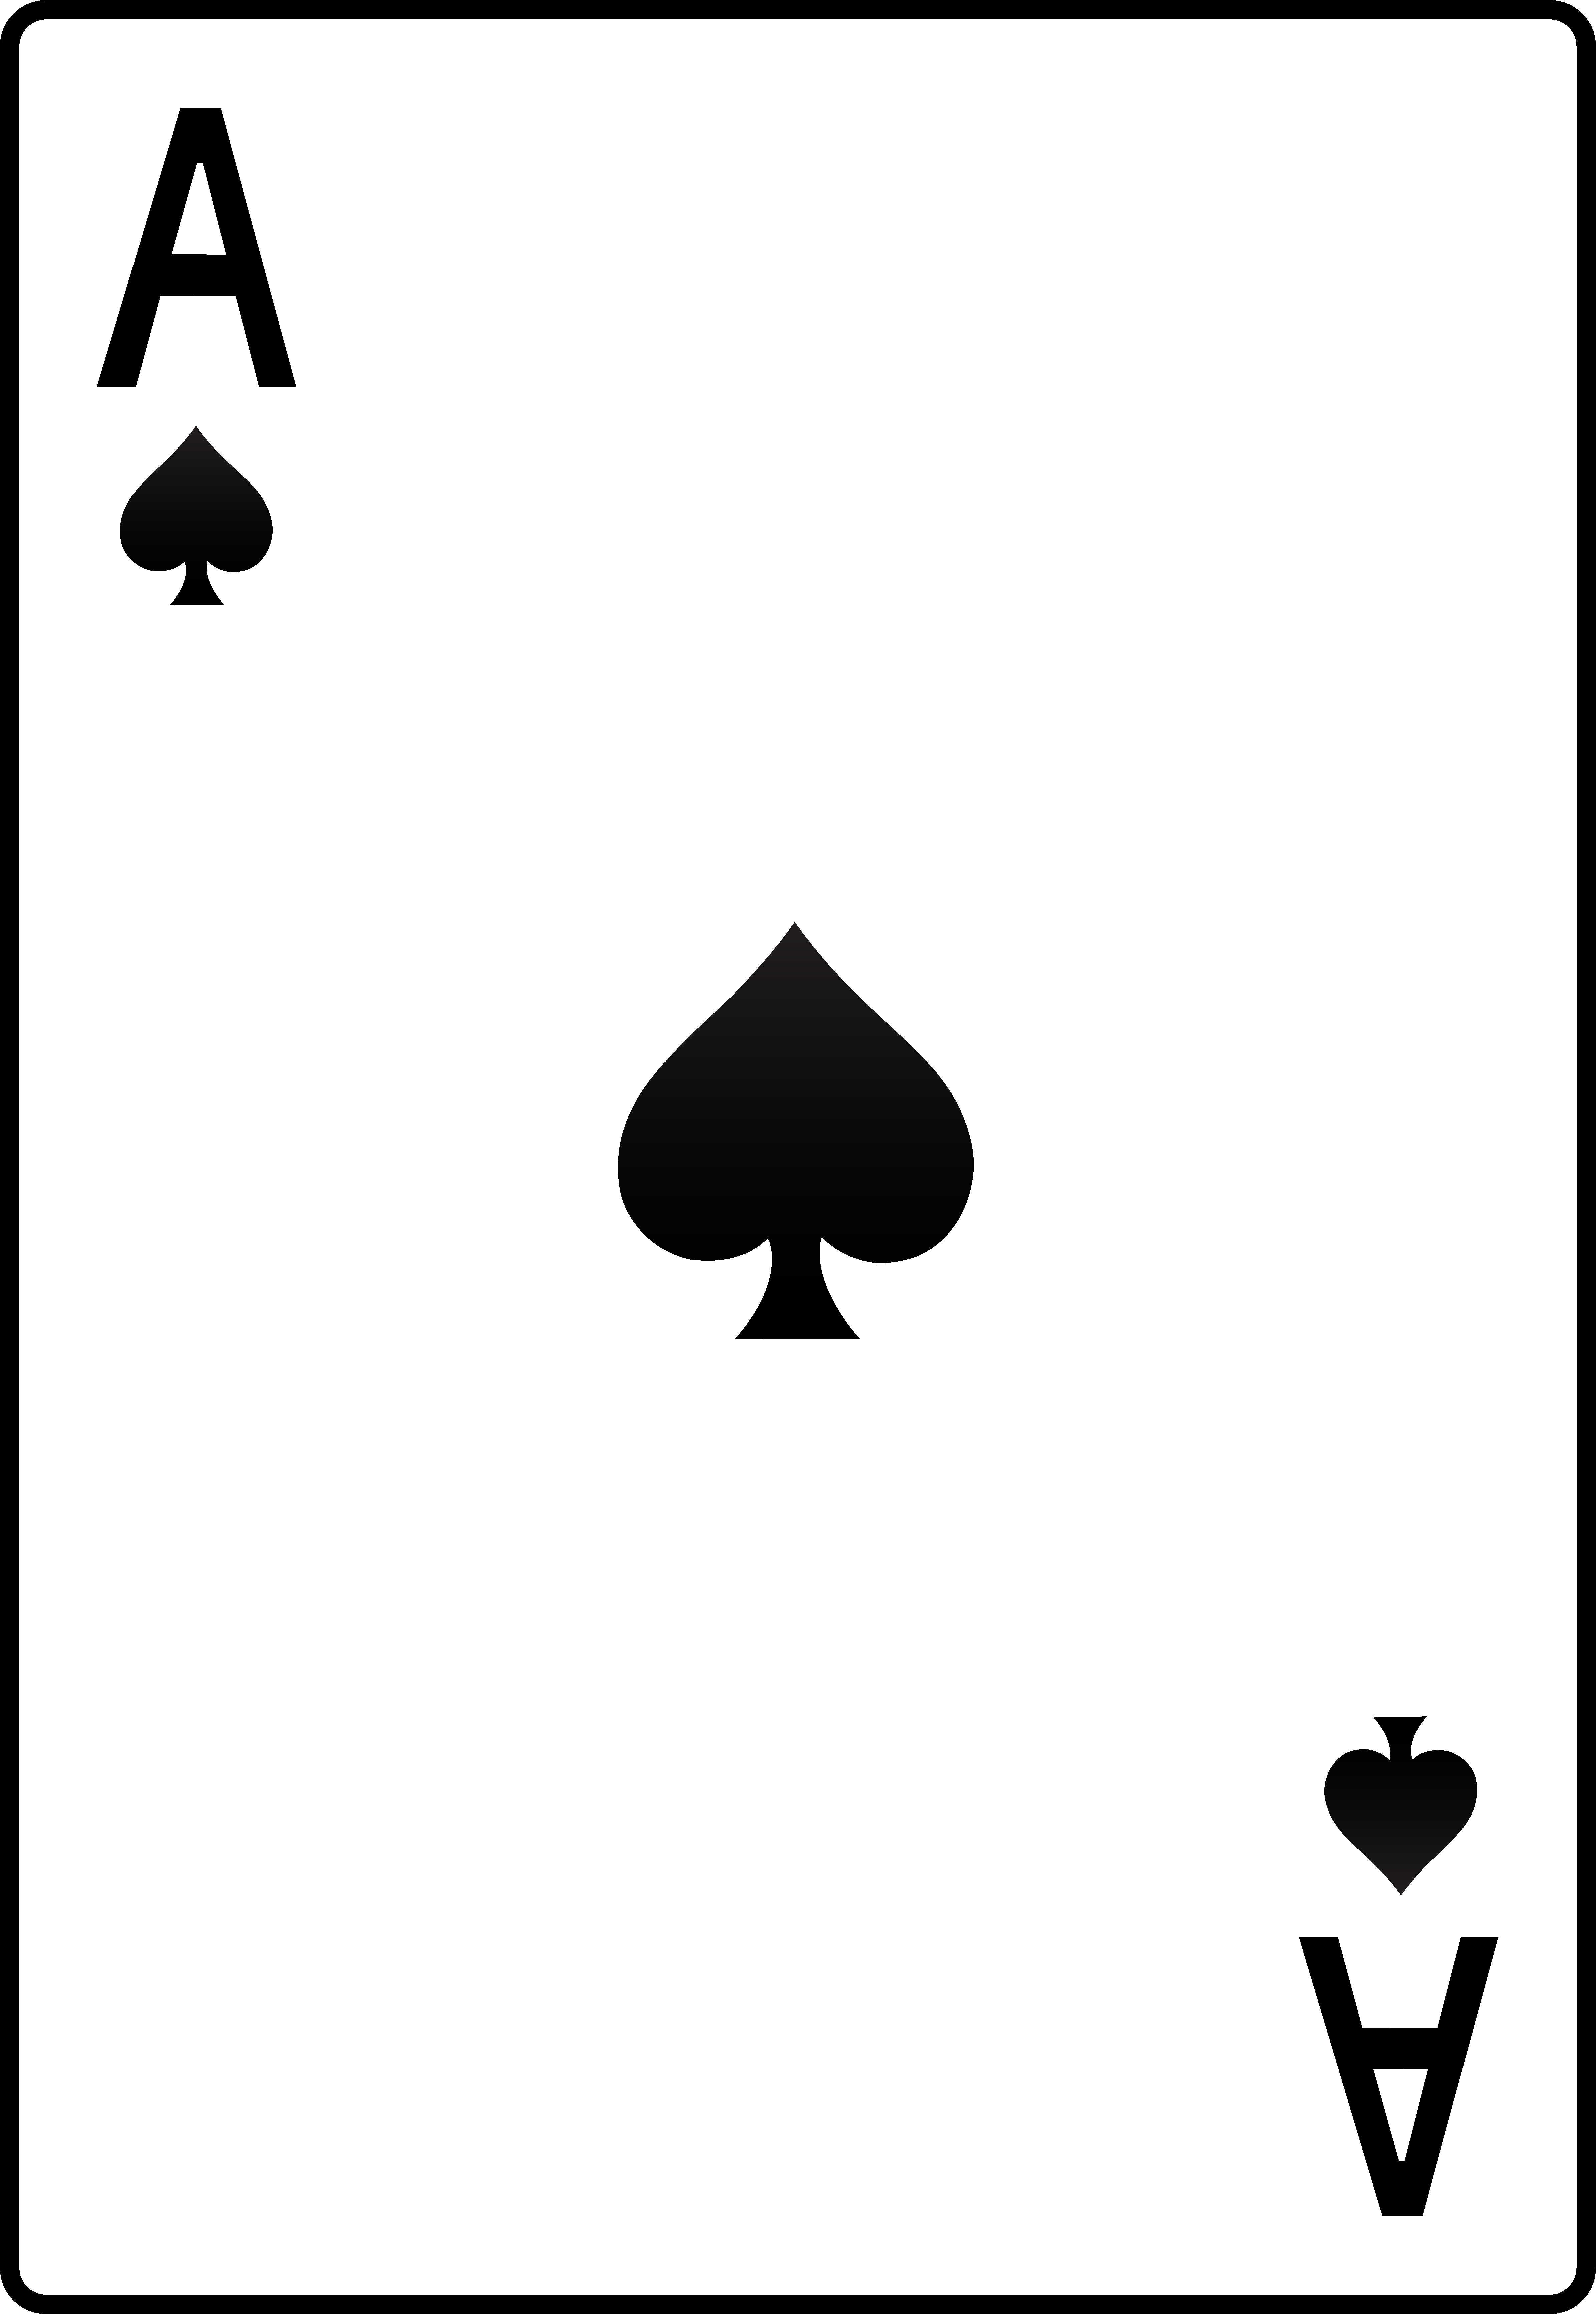 Ace Of Spades Ace Of Spades Tattoo Ace Card Cards